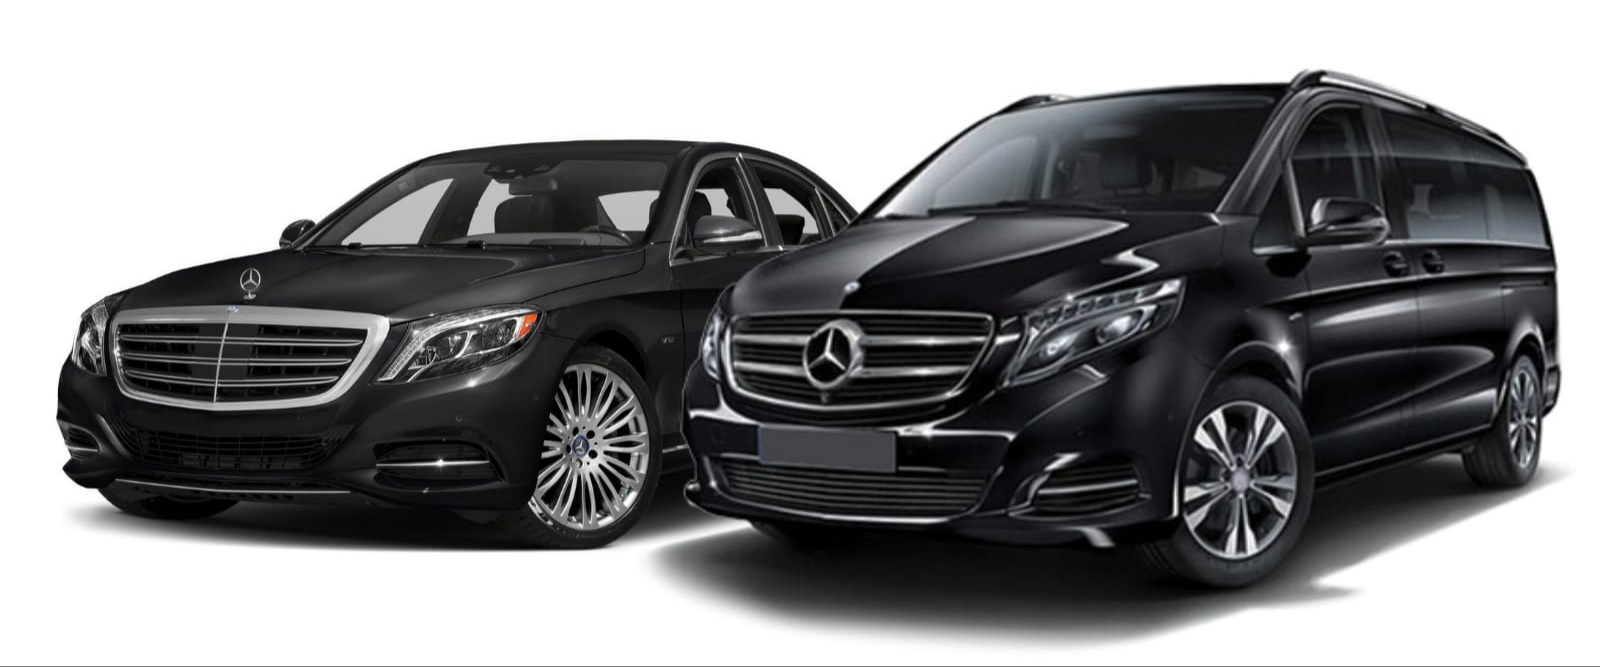 traserbas cars and vans for zurich airport transfers